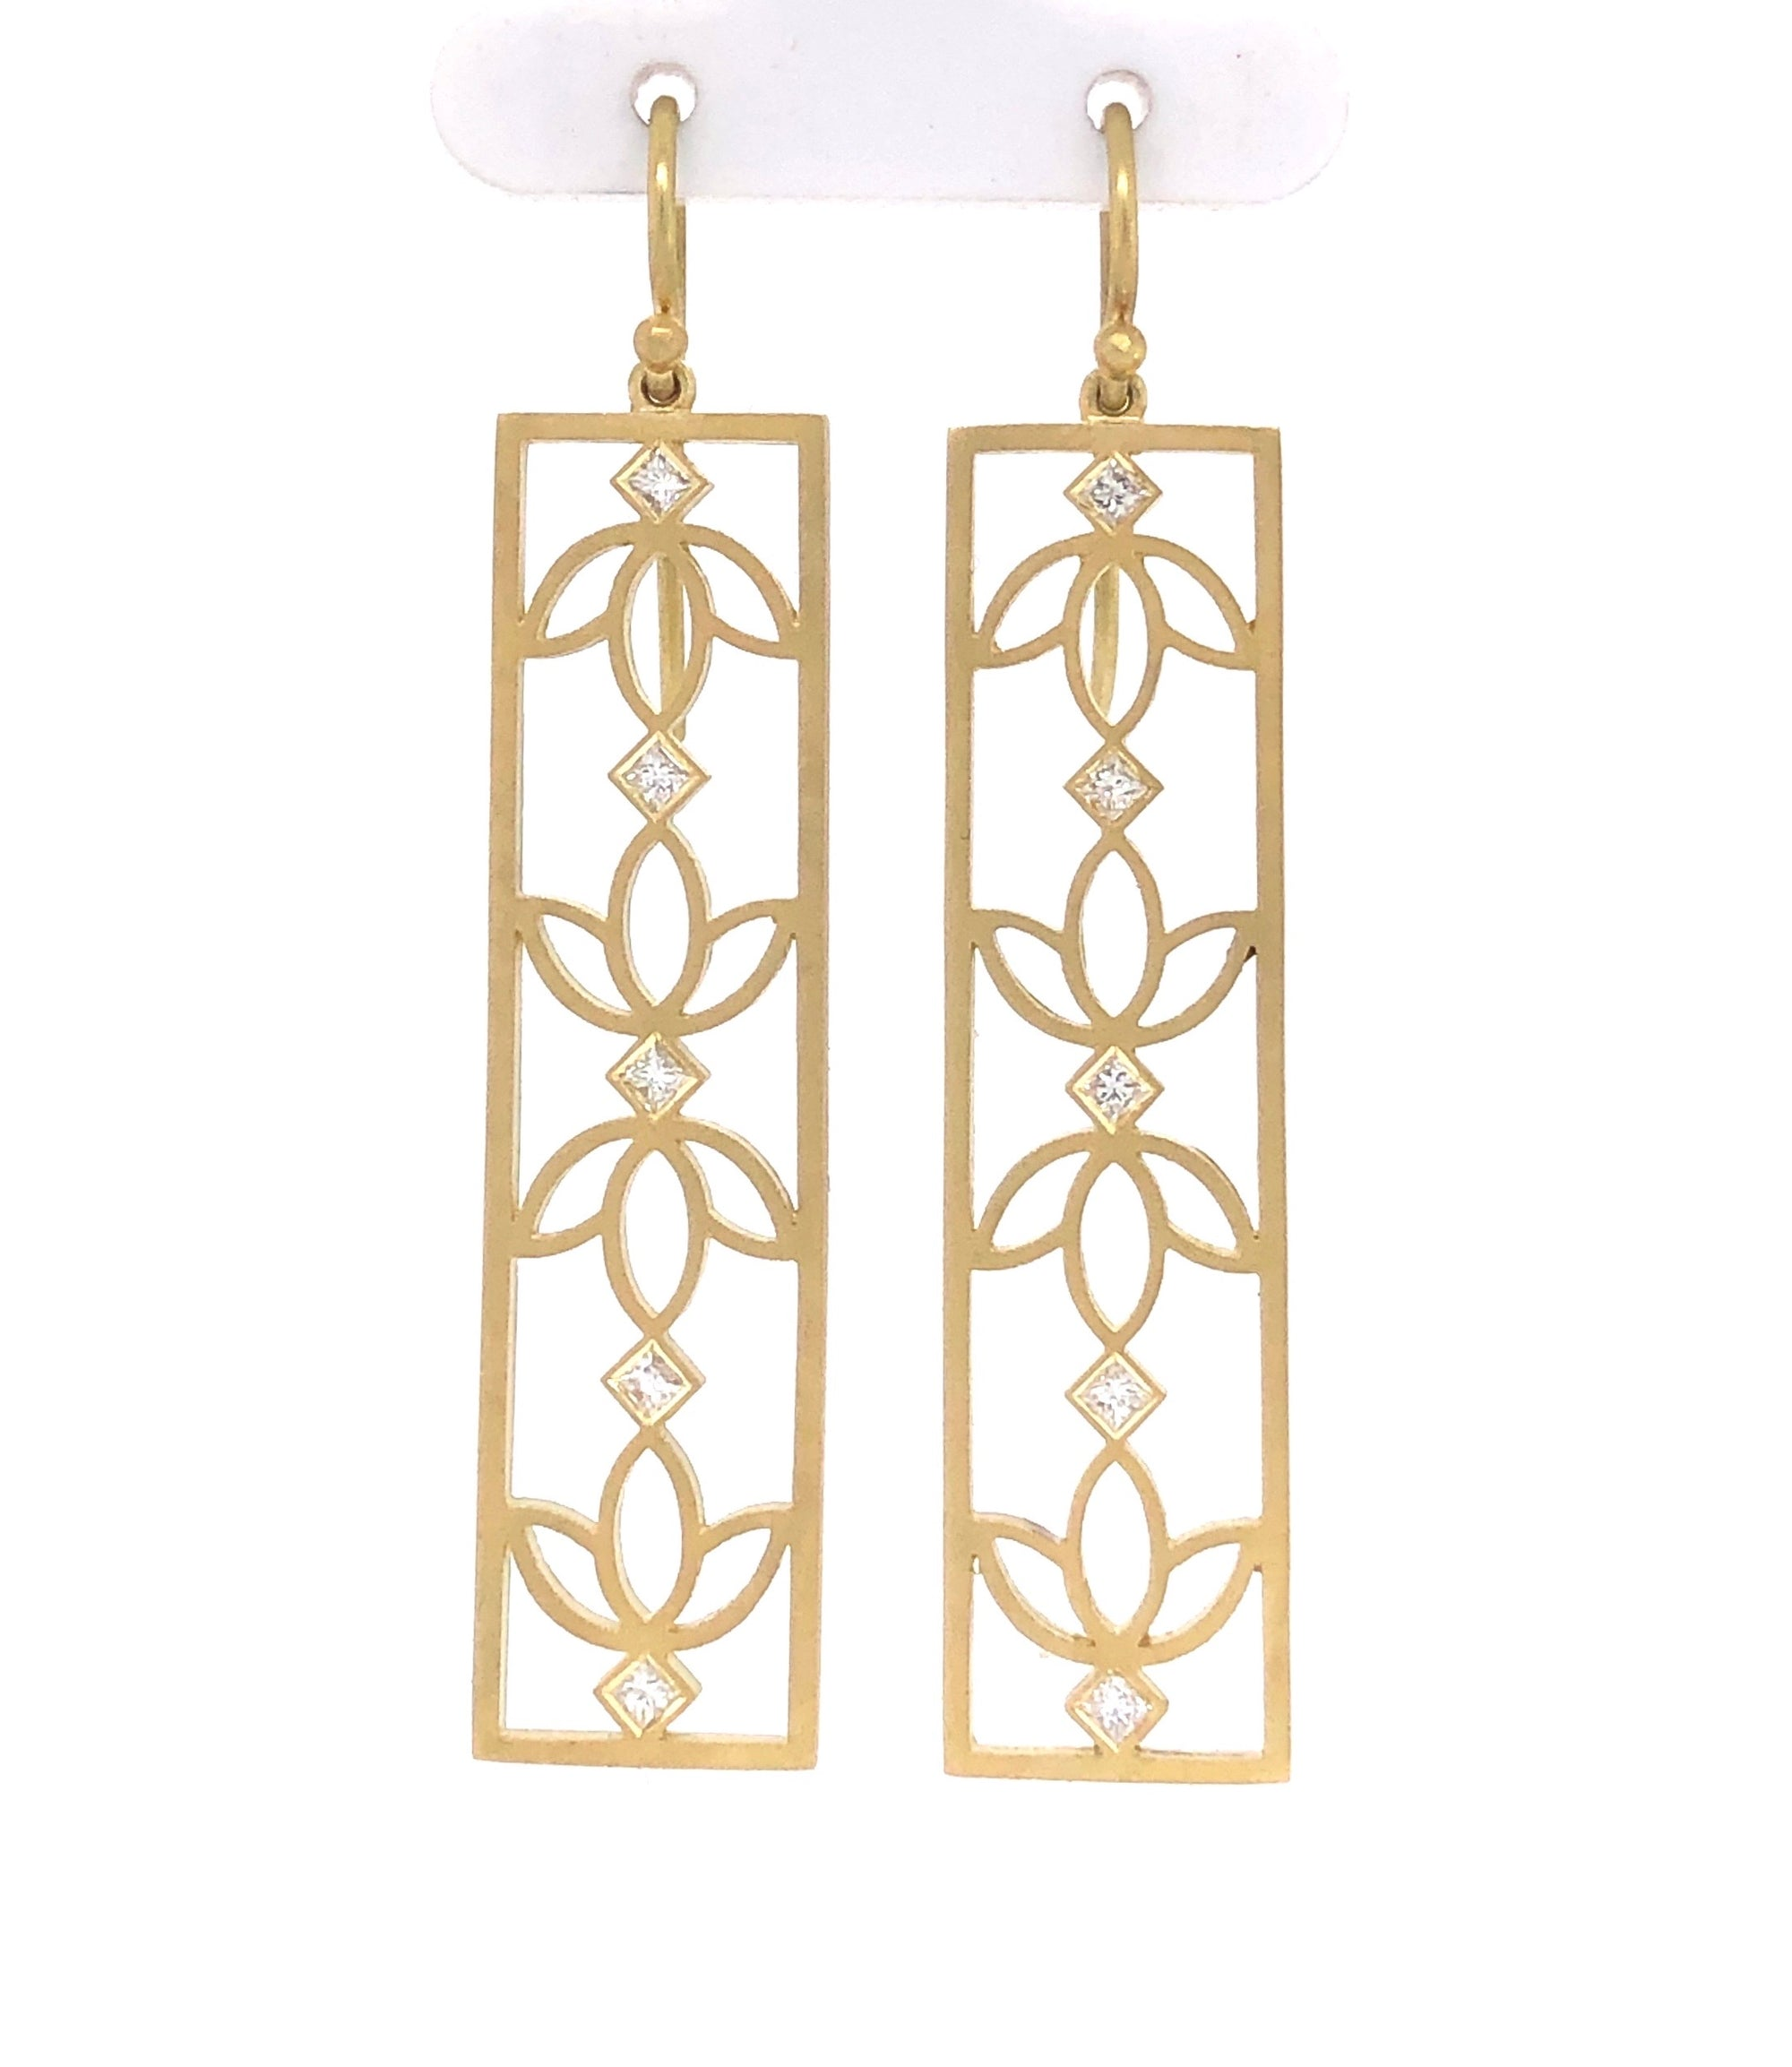 18K Floral Panel Earrings with Diamonds